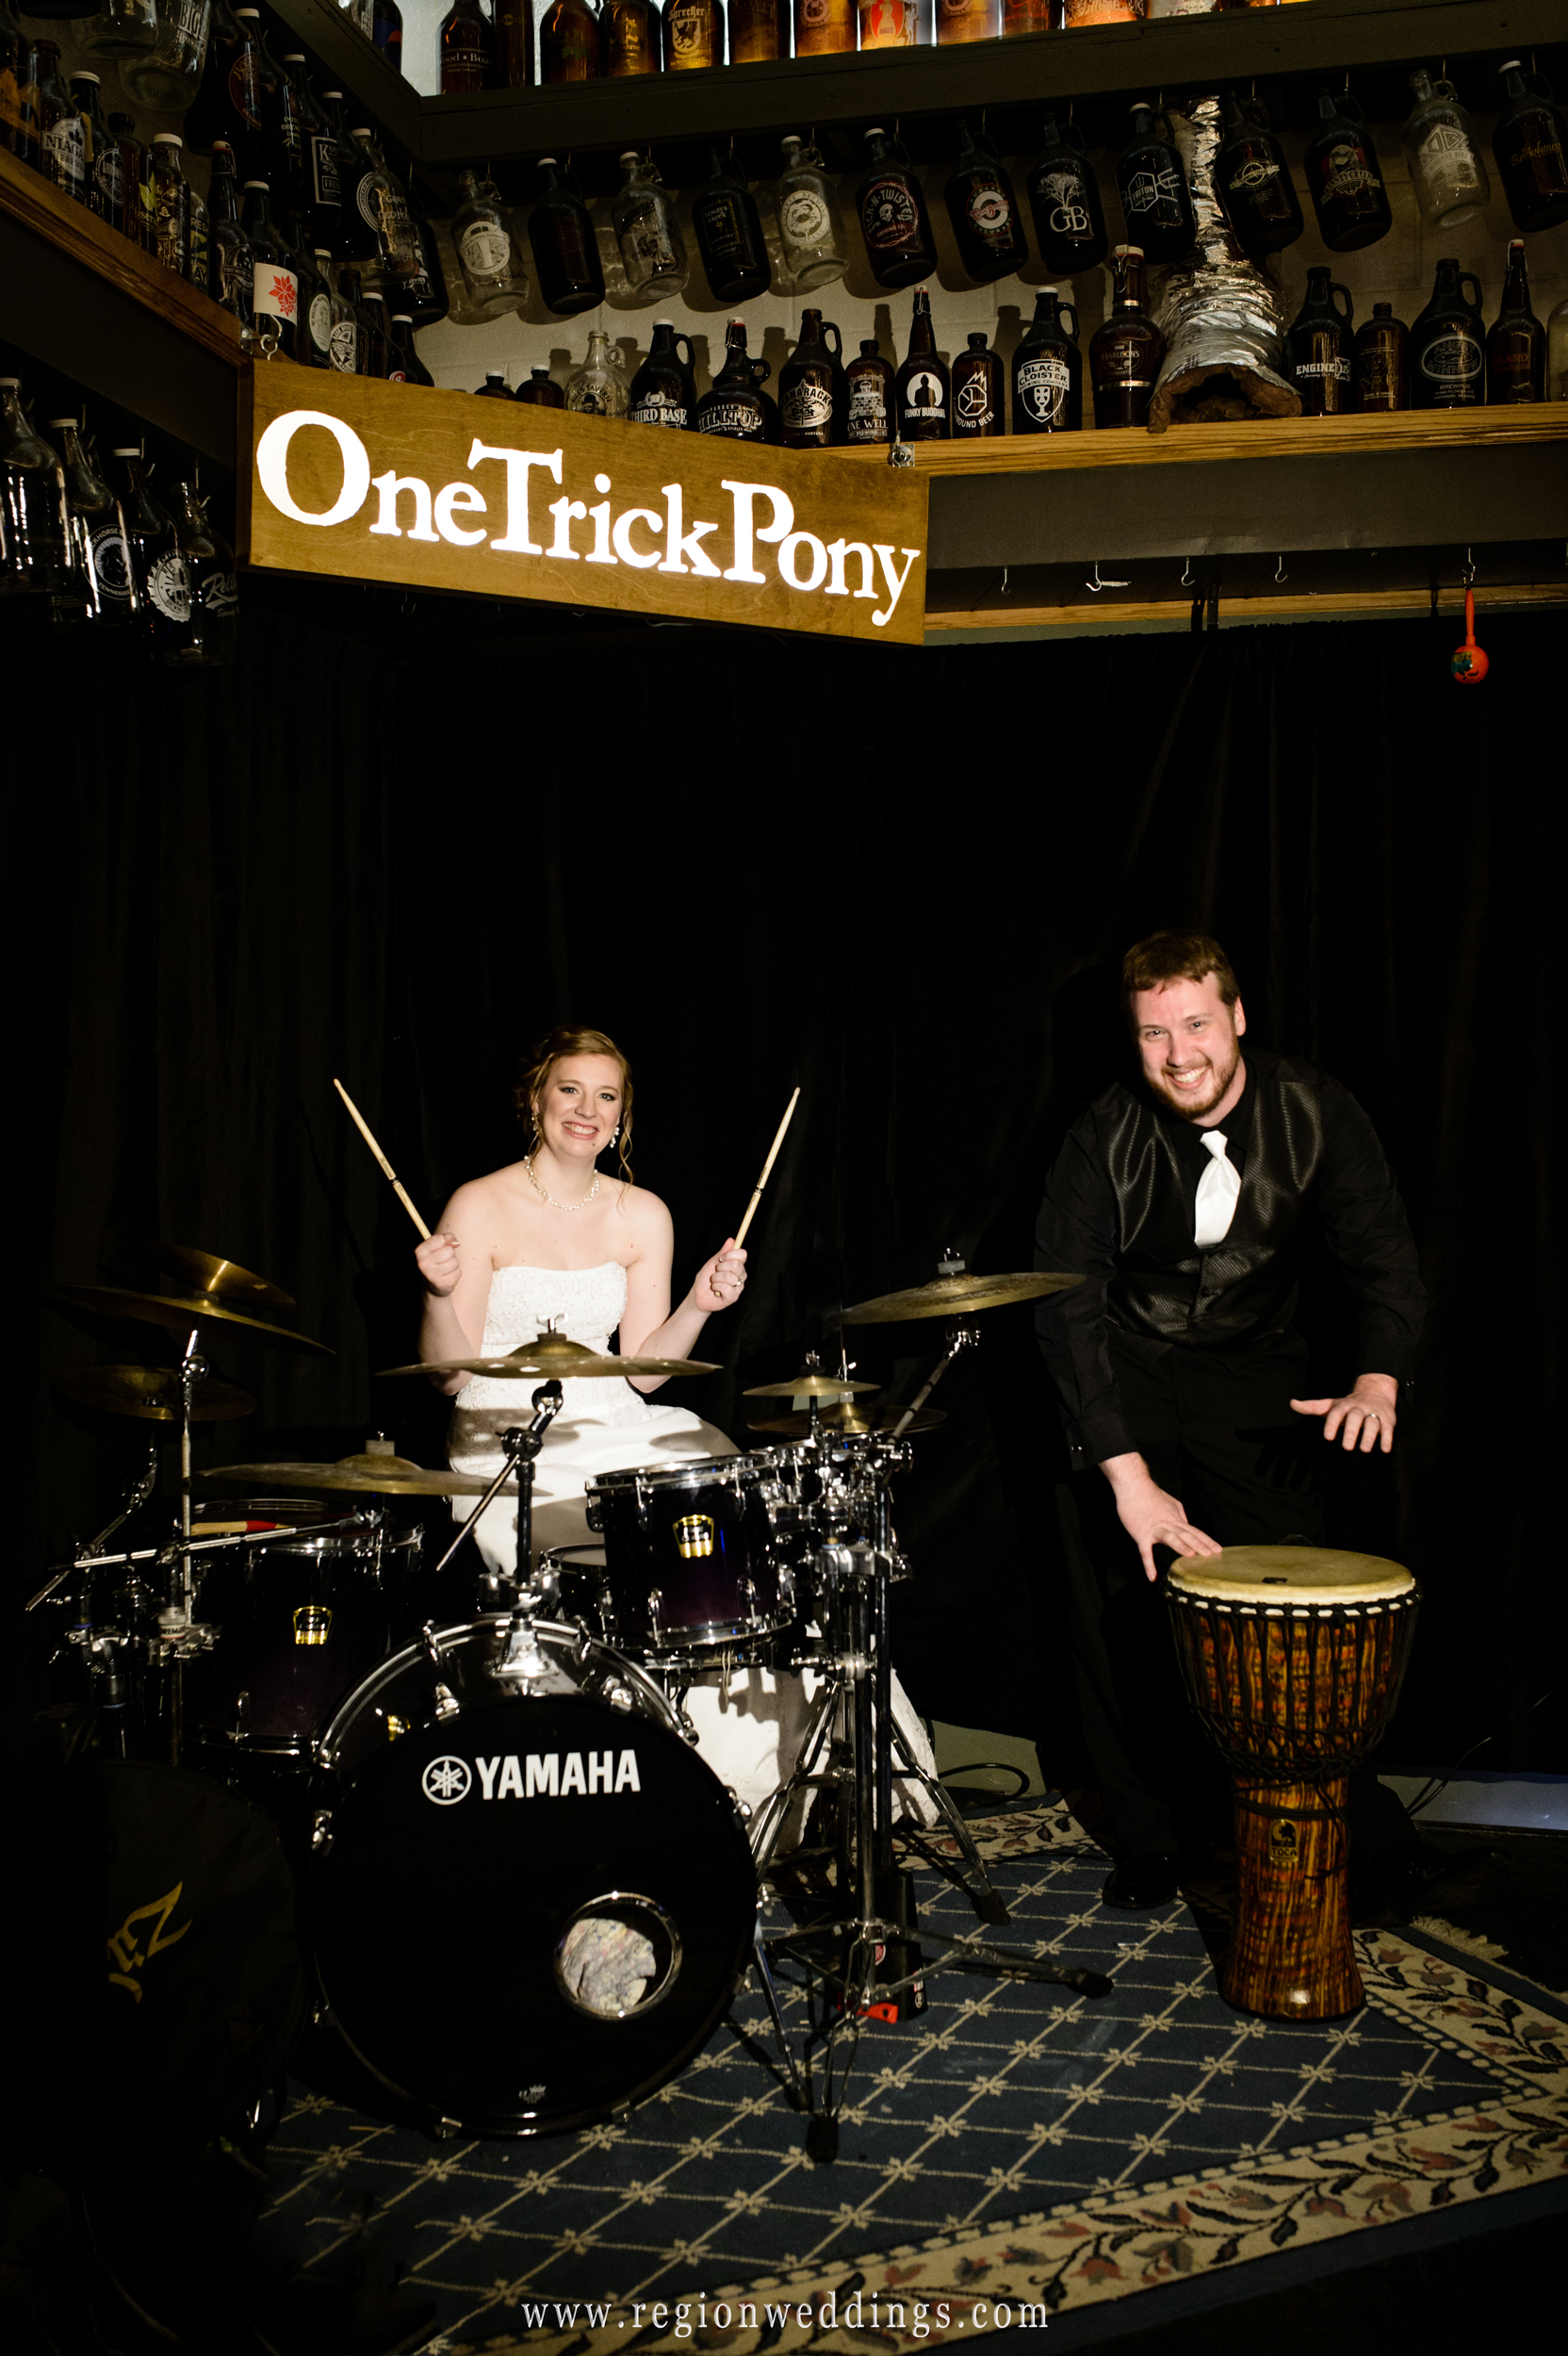 Bride and groom behind the drum kit at One Trick Pony brewery.